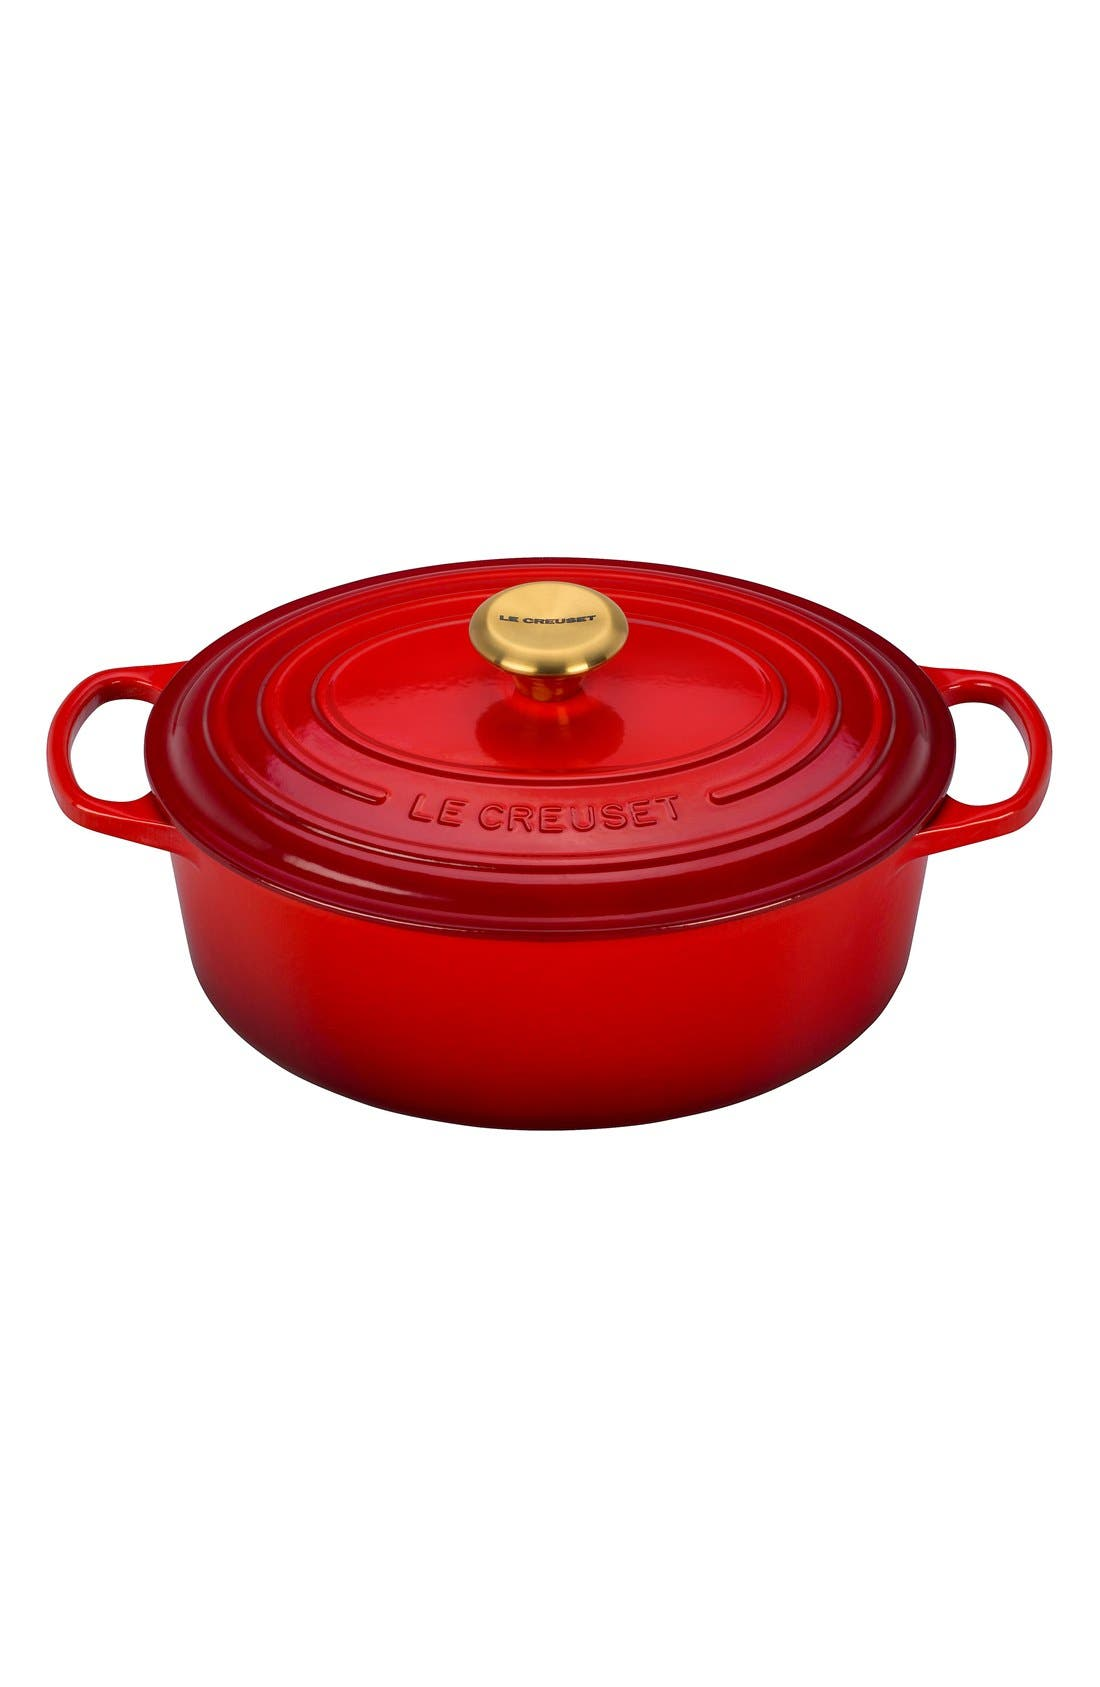 Gold Knob Collection 5 Quart Oval French/Dutch Oven,                         Main,                         color, CHERRY/CERISE GOLD